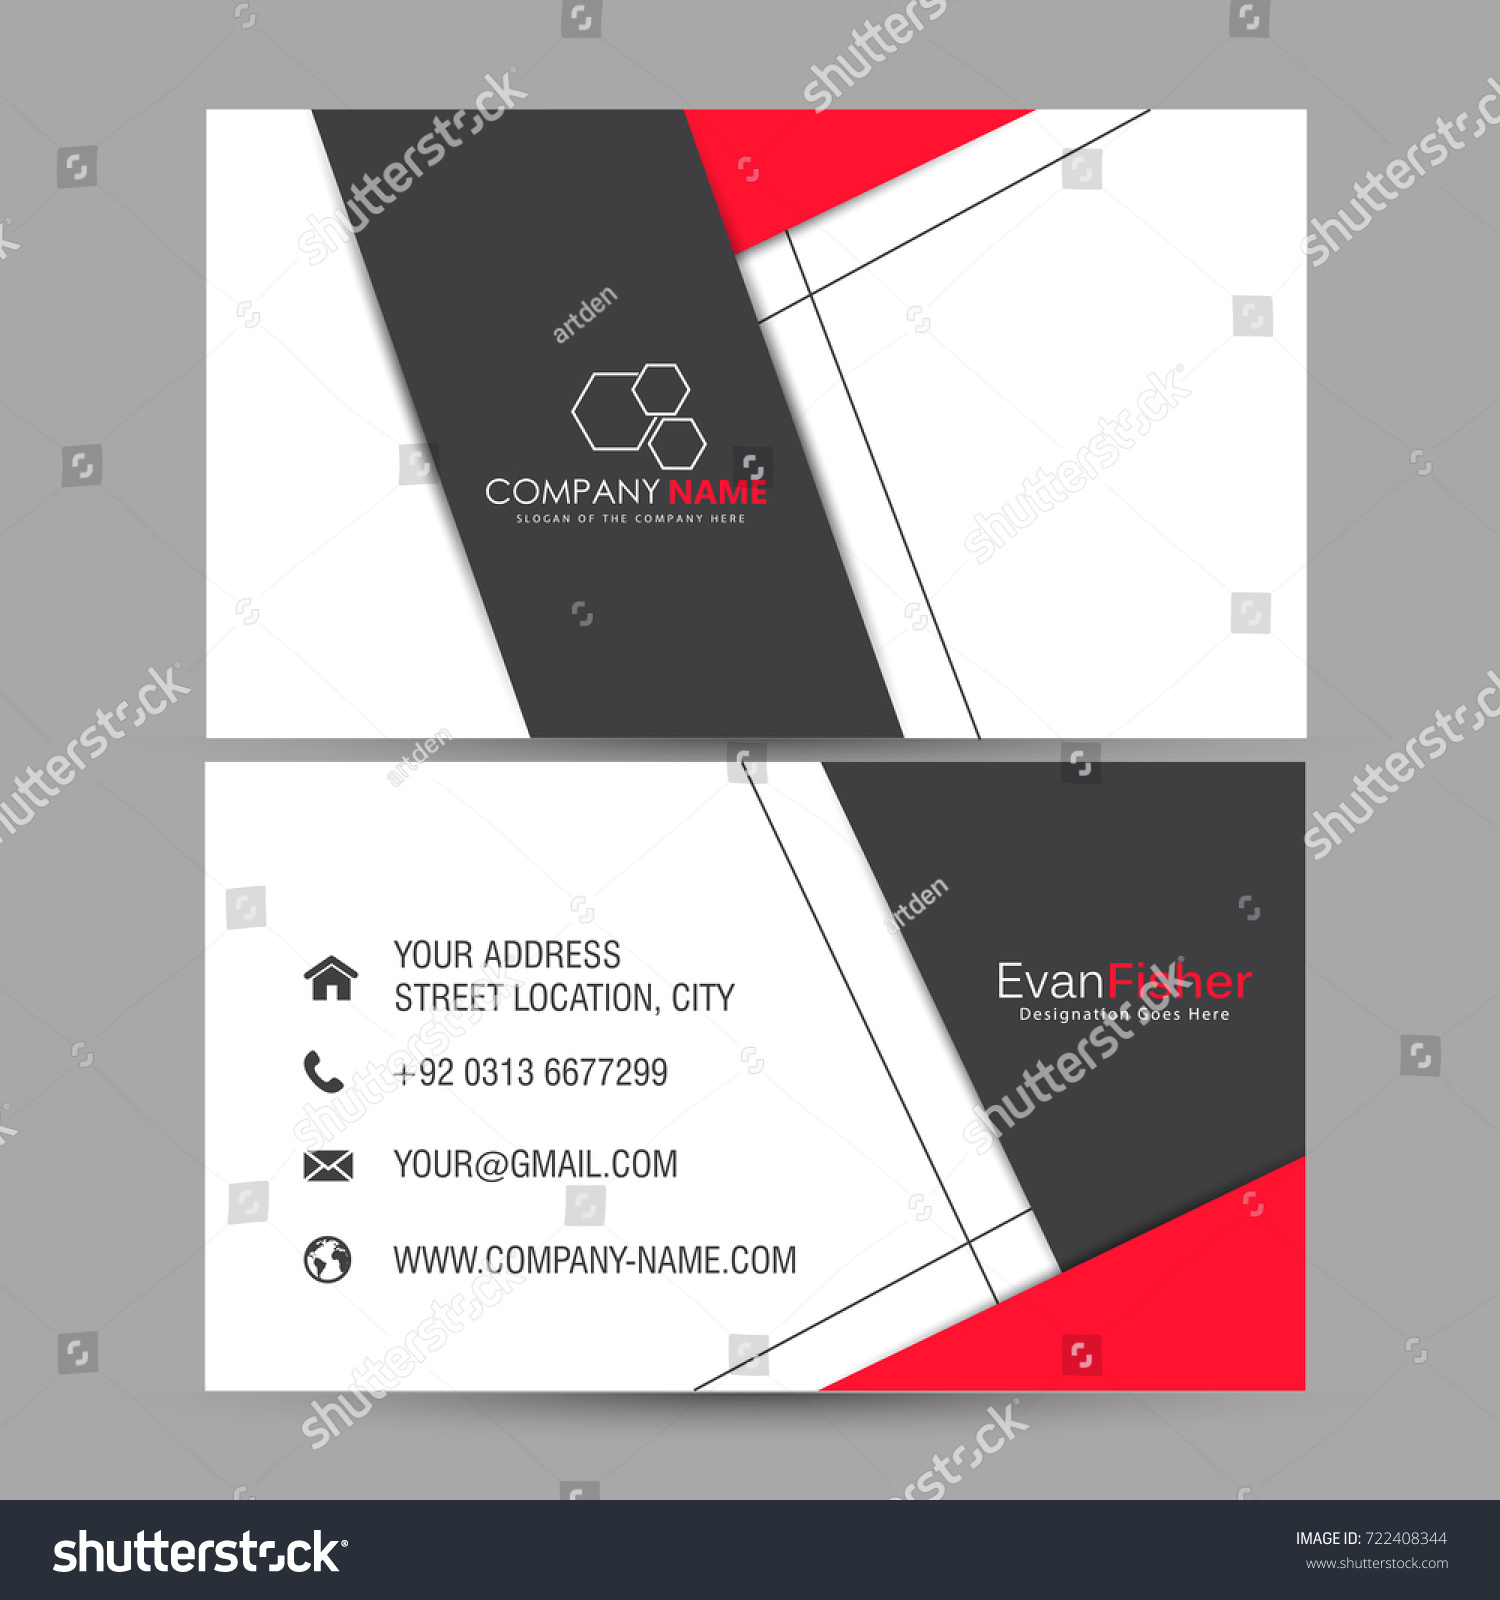 Nice Beautiful Business Card Design Illustration Stock Vector ...